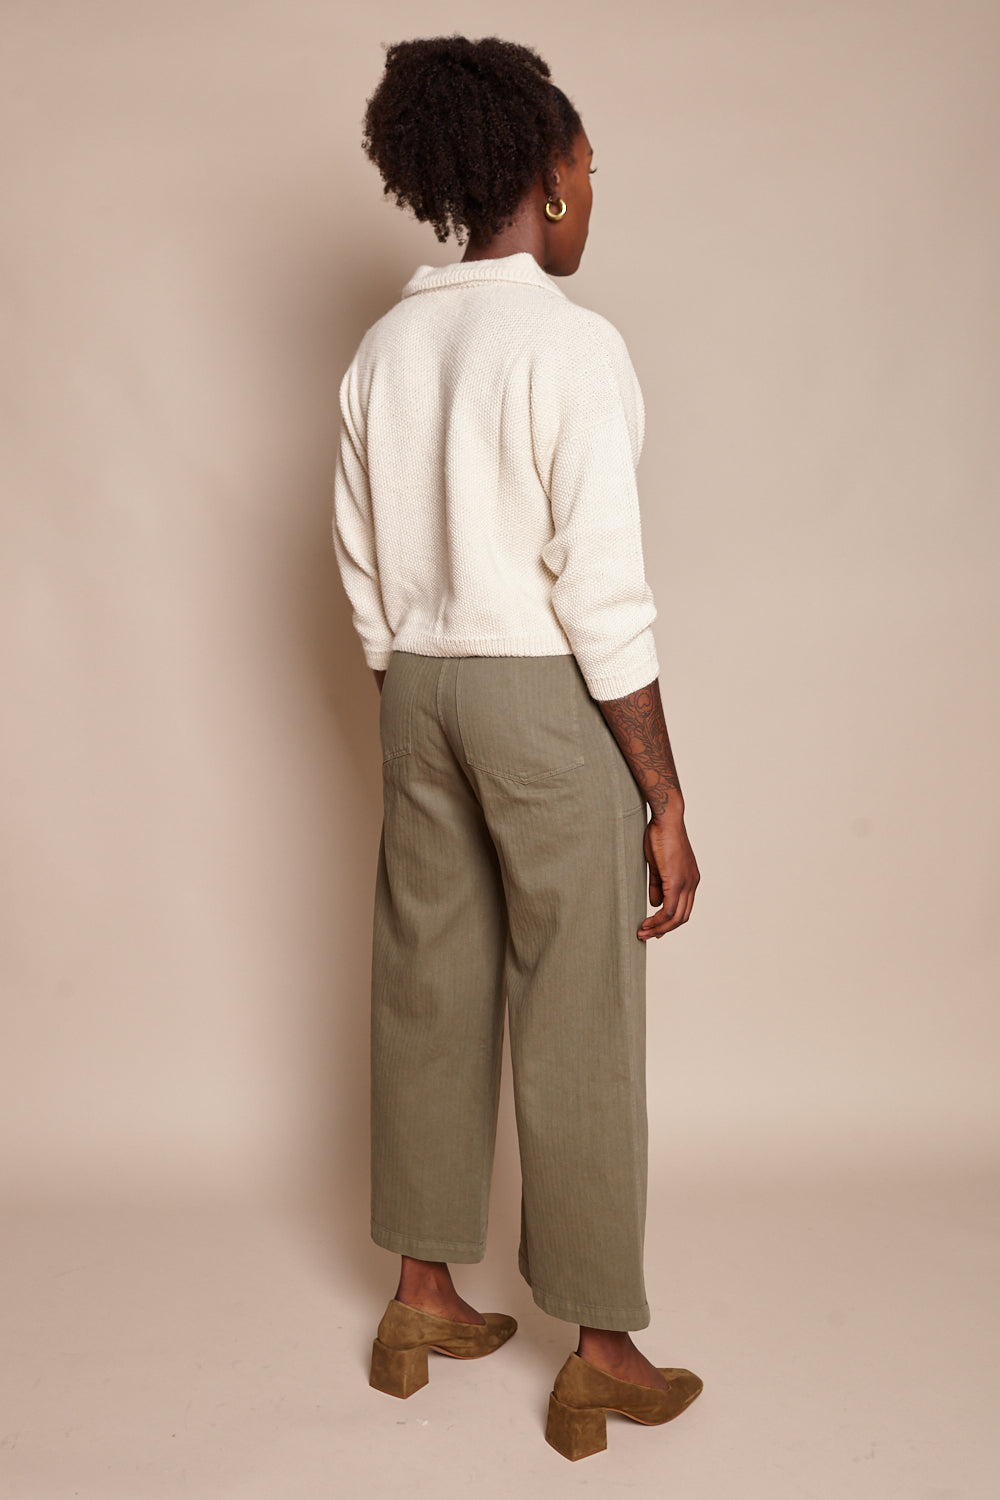 First Rite Cargo Trouser in Olive - Vert & Vogue